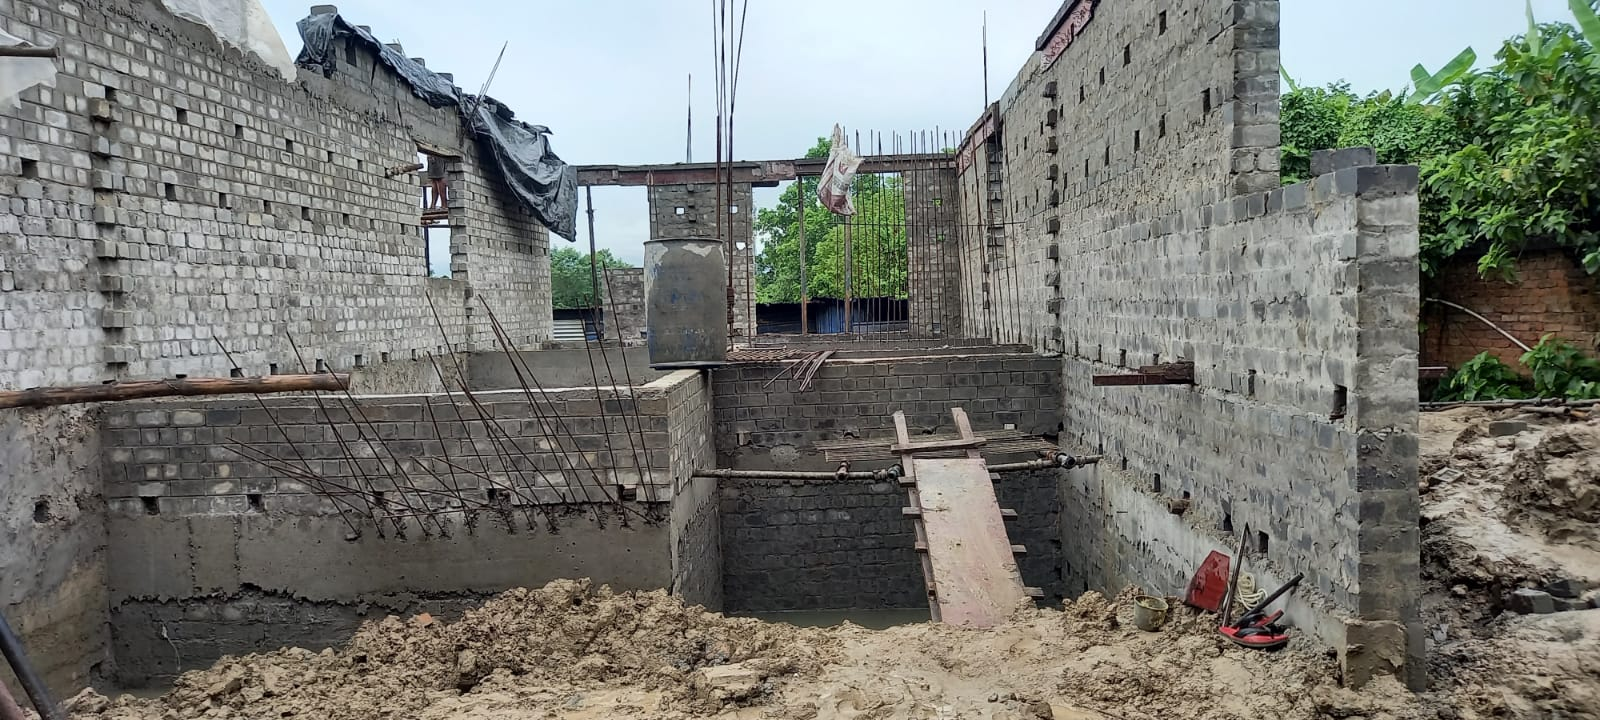 foundation of row house no. 228  have been completed for Nirvana as on 13.09.2021